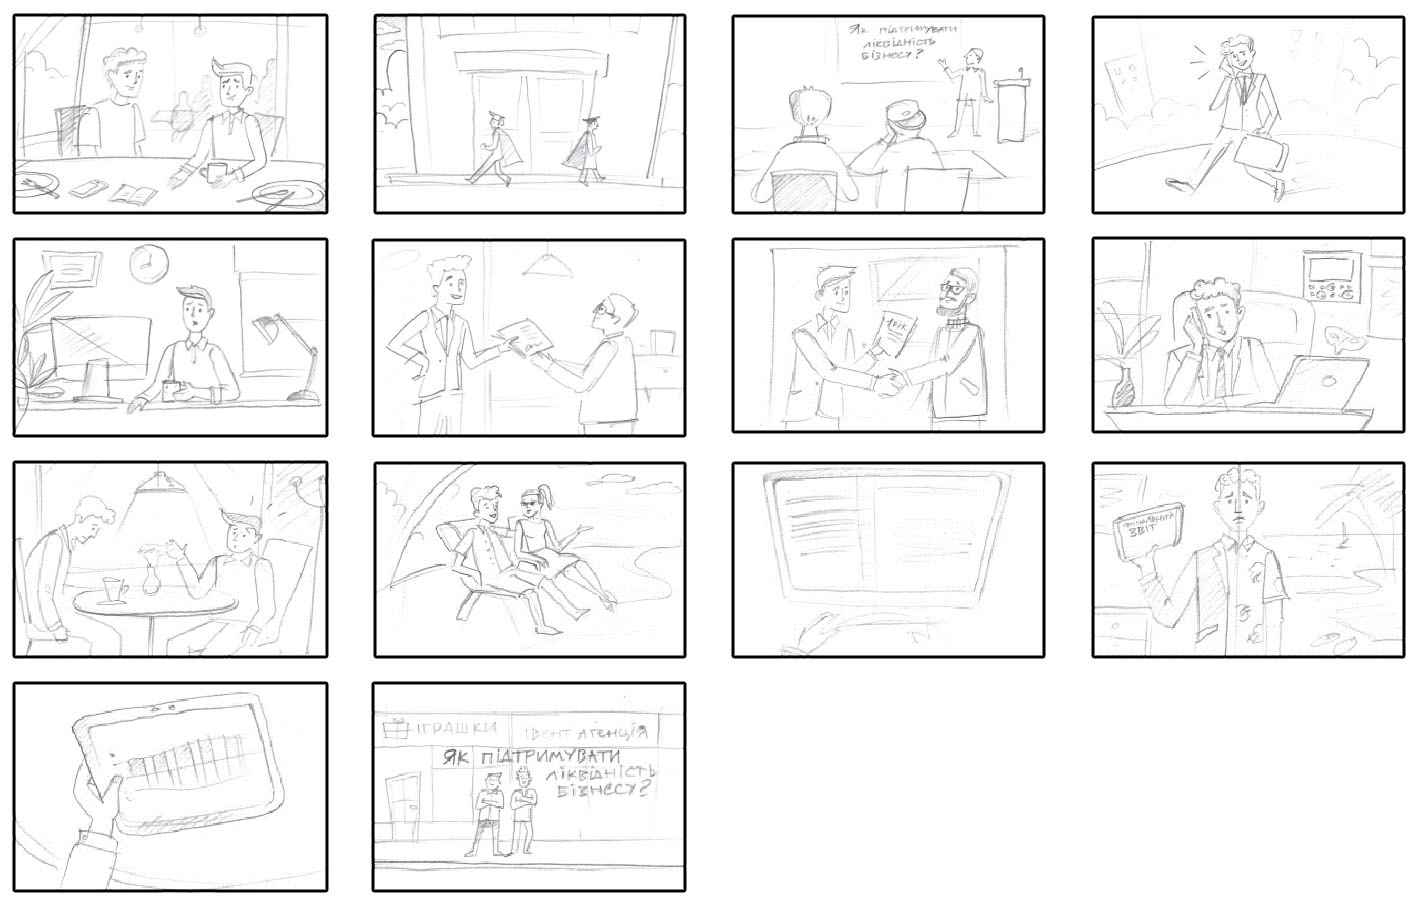 Storyboard for Promotional Video